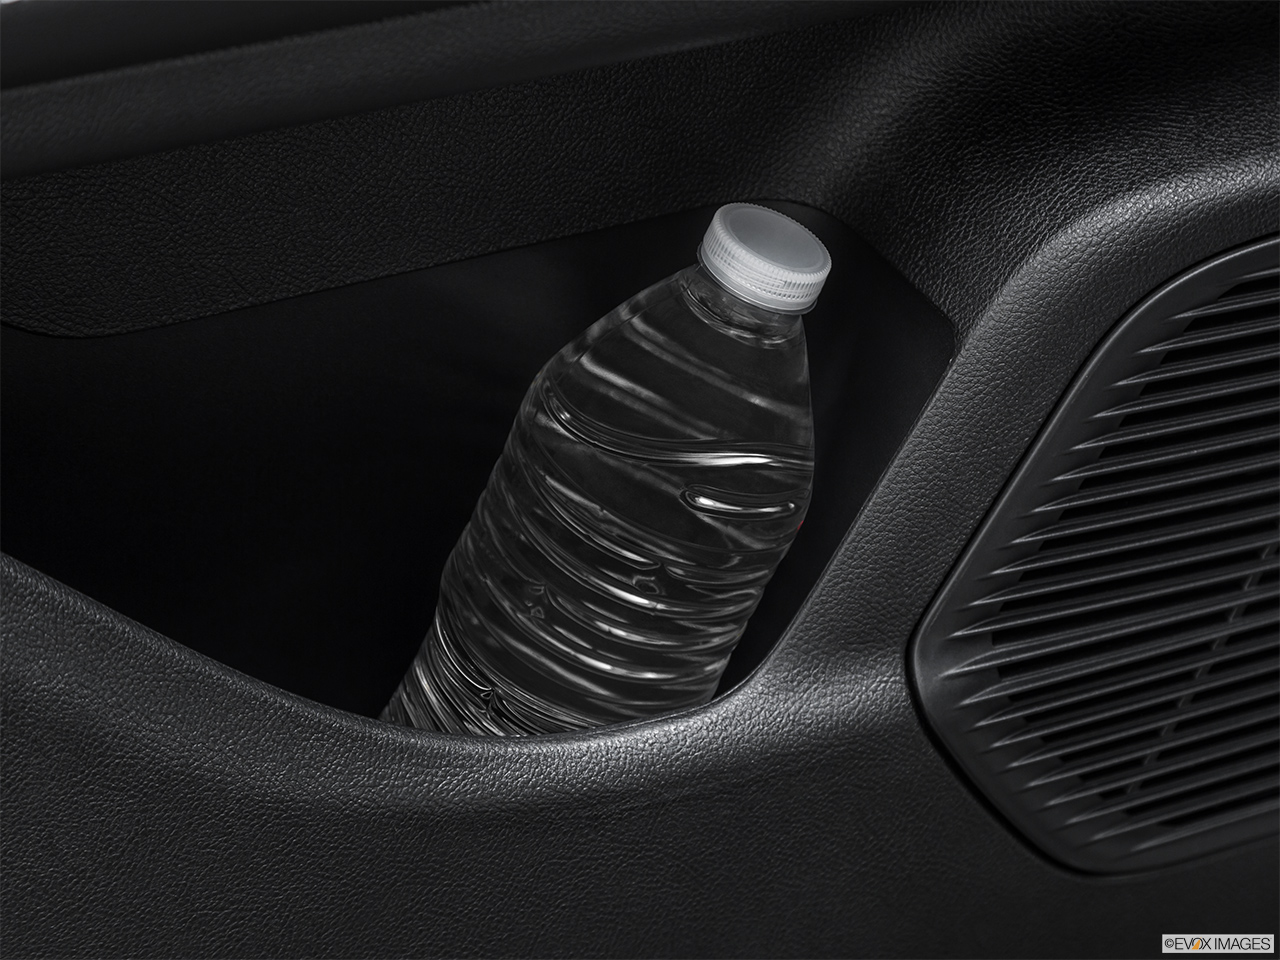 2020 Lincoln Corsair Standard Second row side cup holder with coffee prop, or second row door cup holder with water bottle.